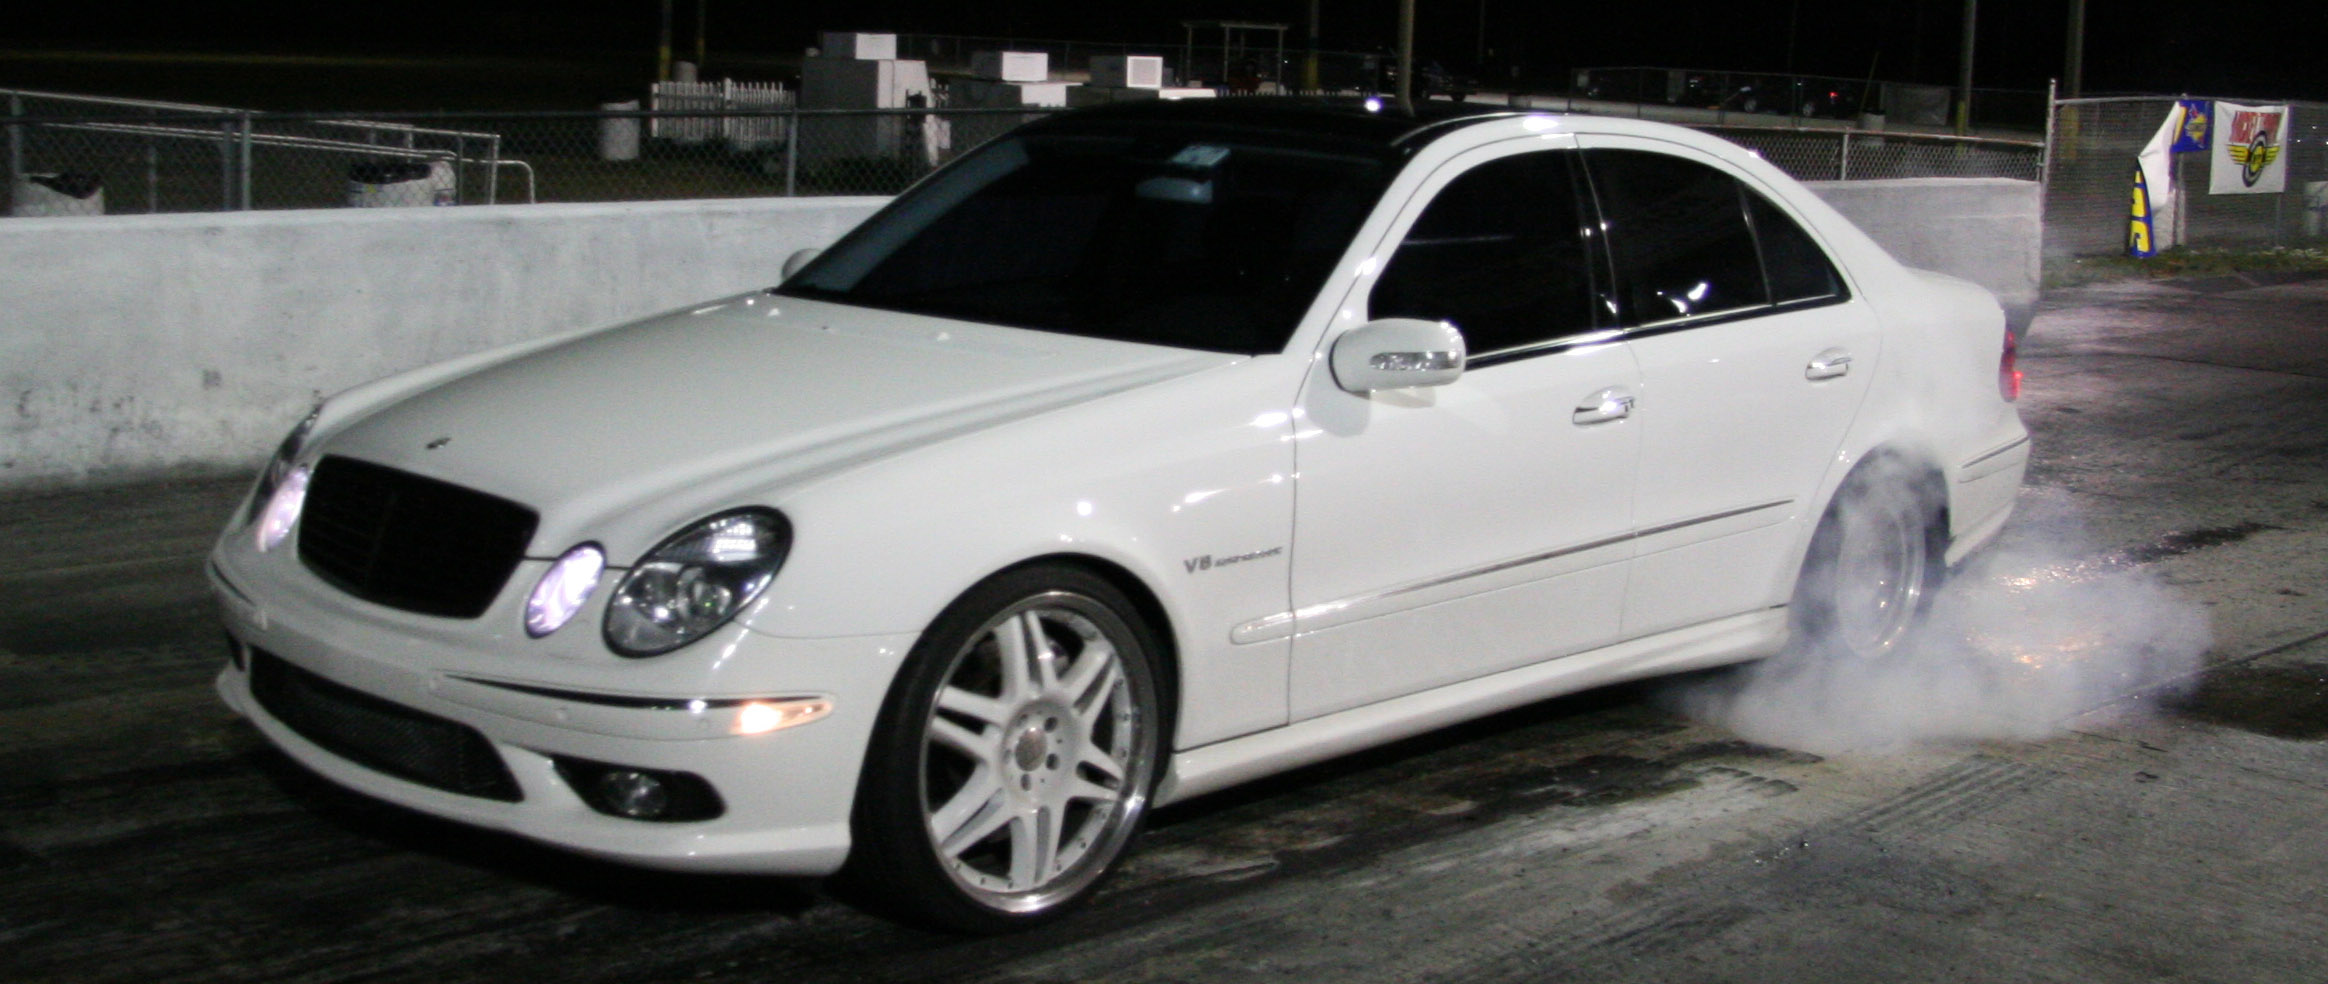 Albert's Mercedes-Benz E55 AMG